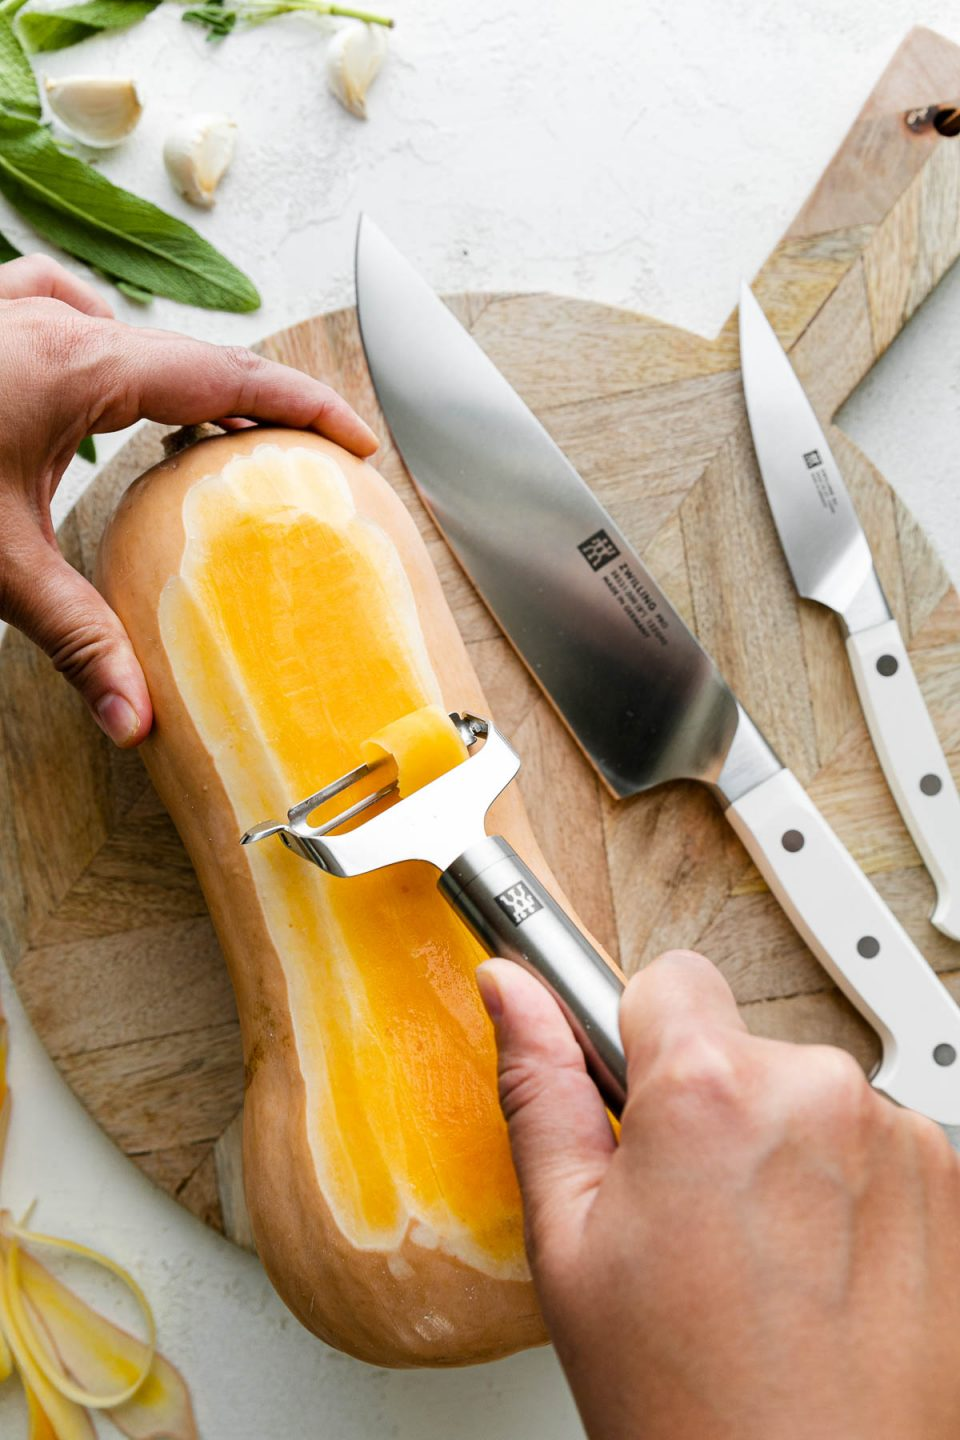 A whole butternut squash rests on top of a round wooden cutting board alongside a pair of Zwilling Pro Le Blanc Knives. A woman's hand holds the top portion of the butternut squash, while holding a Zwilling Pro Y-Peeler in the other hand to peel the squash. The cutting board sits atop a white textured surface while butternut squash peelings, fresh herbs, & cloves of garlic surround the cutting board.